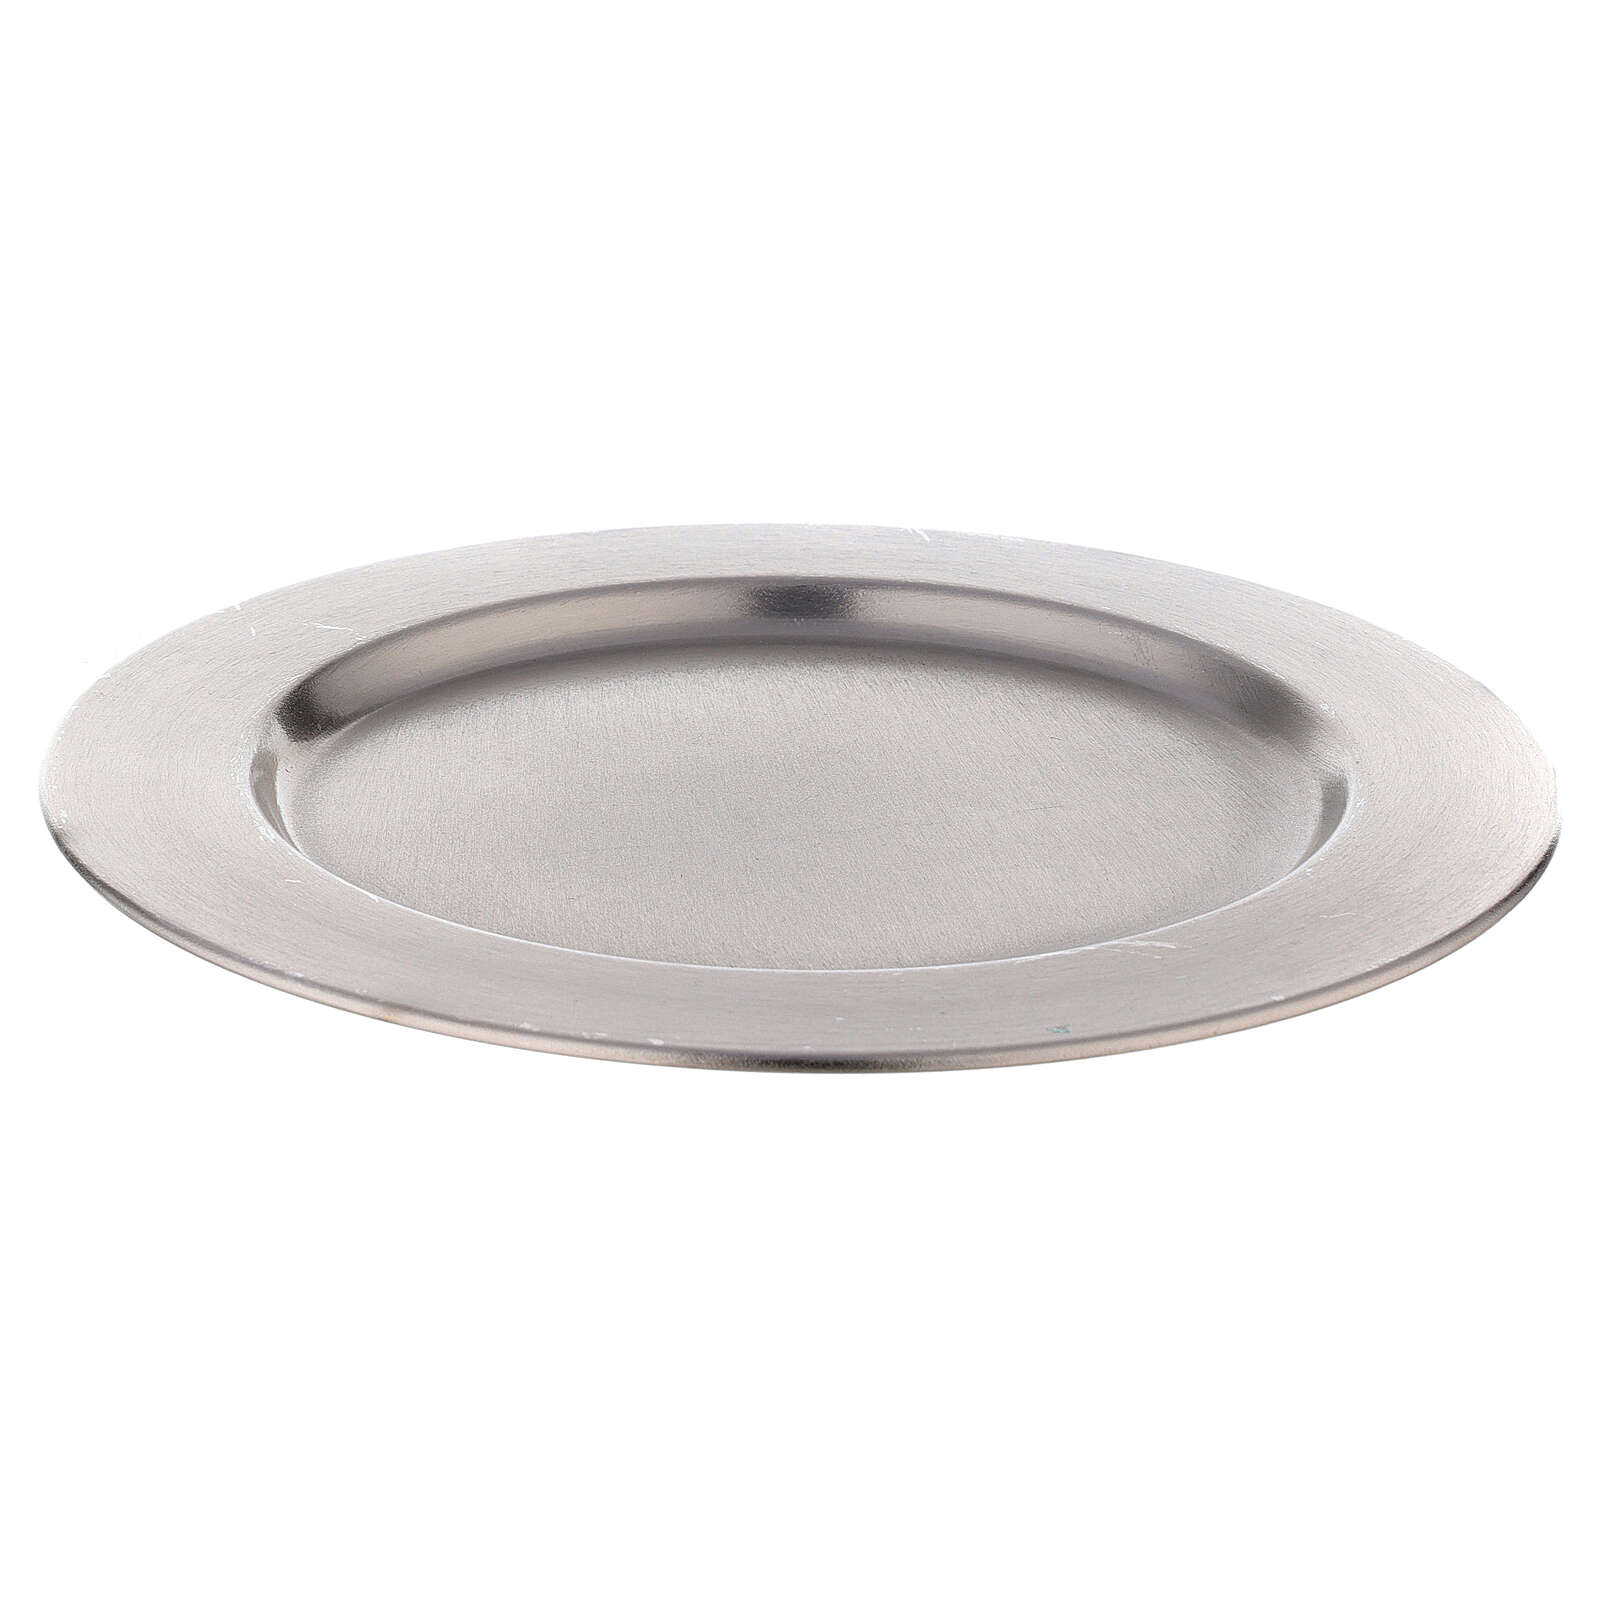 Thick edge candle holder plate in nickel-plated brass d. 8 1/4 in 3